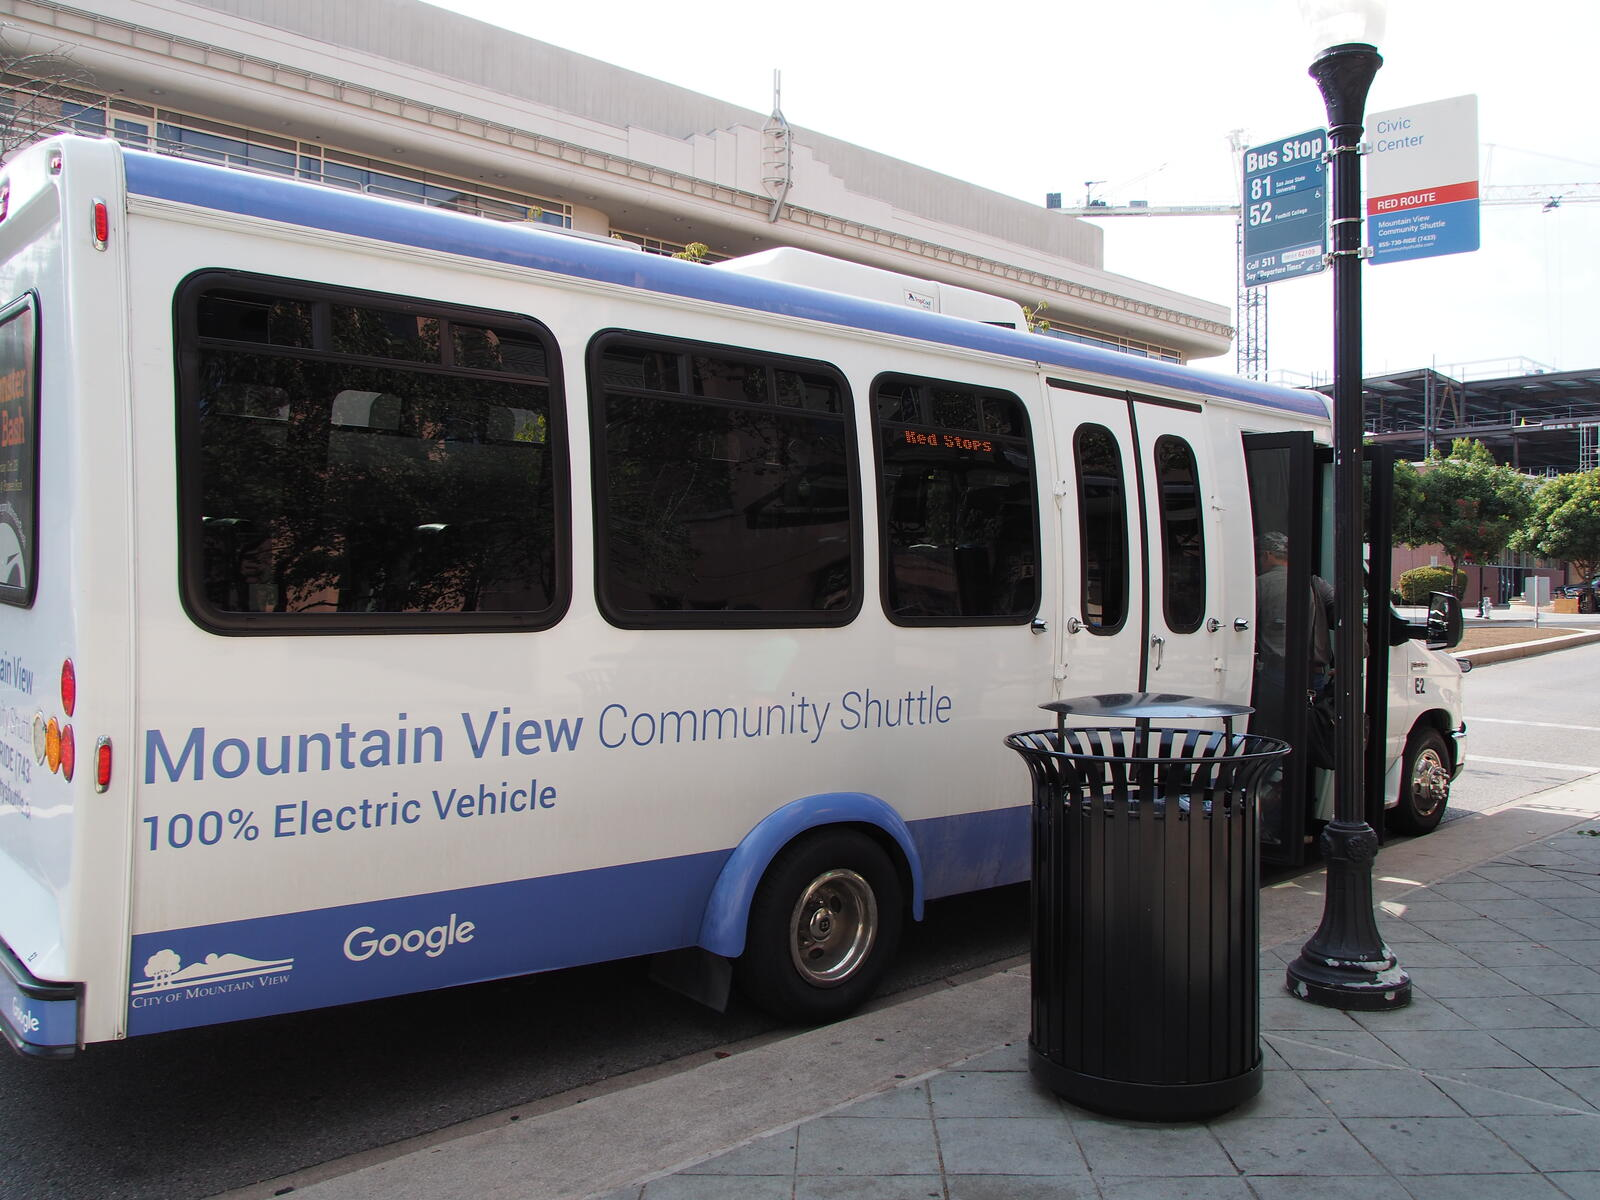 City of Mountain View Shuttle Study